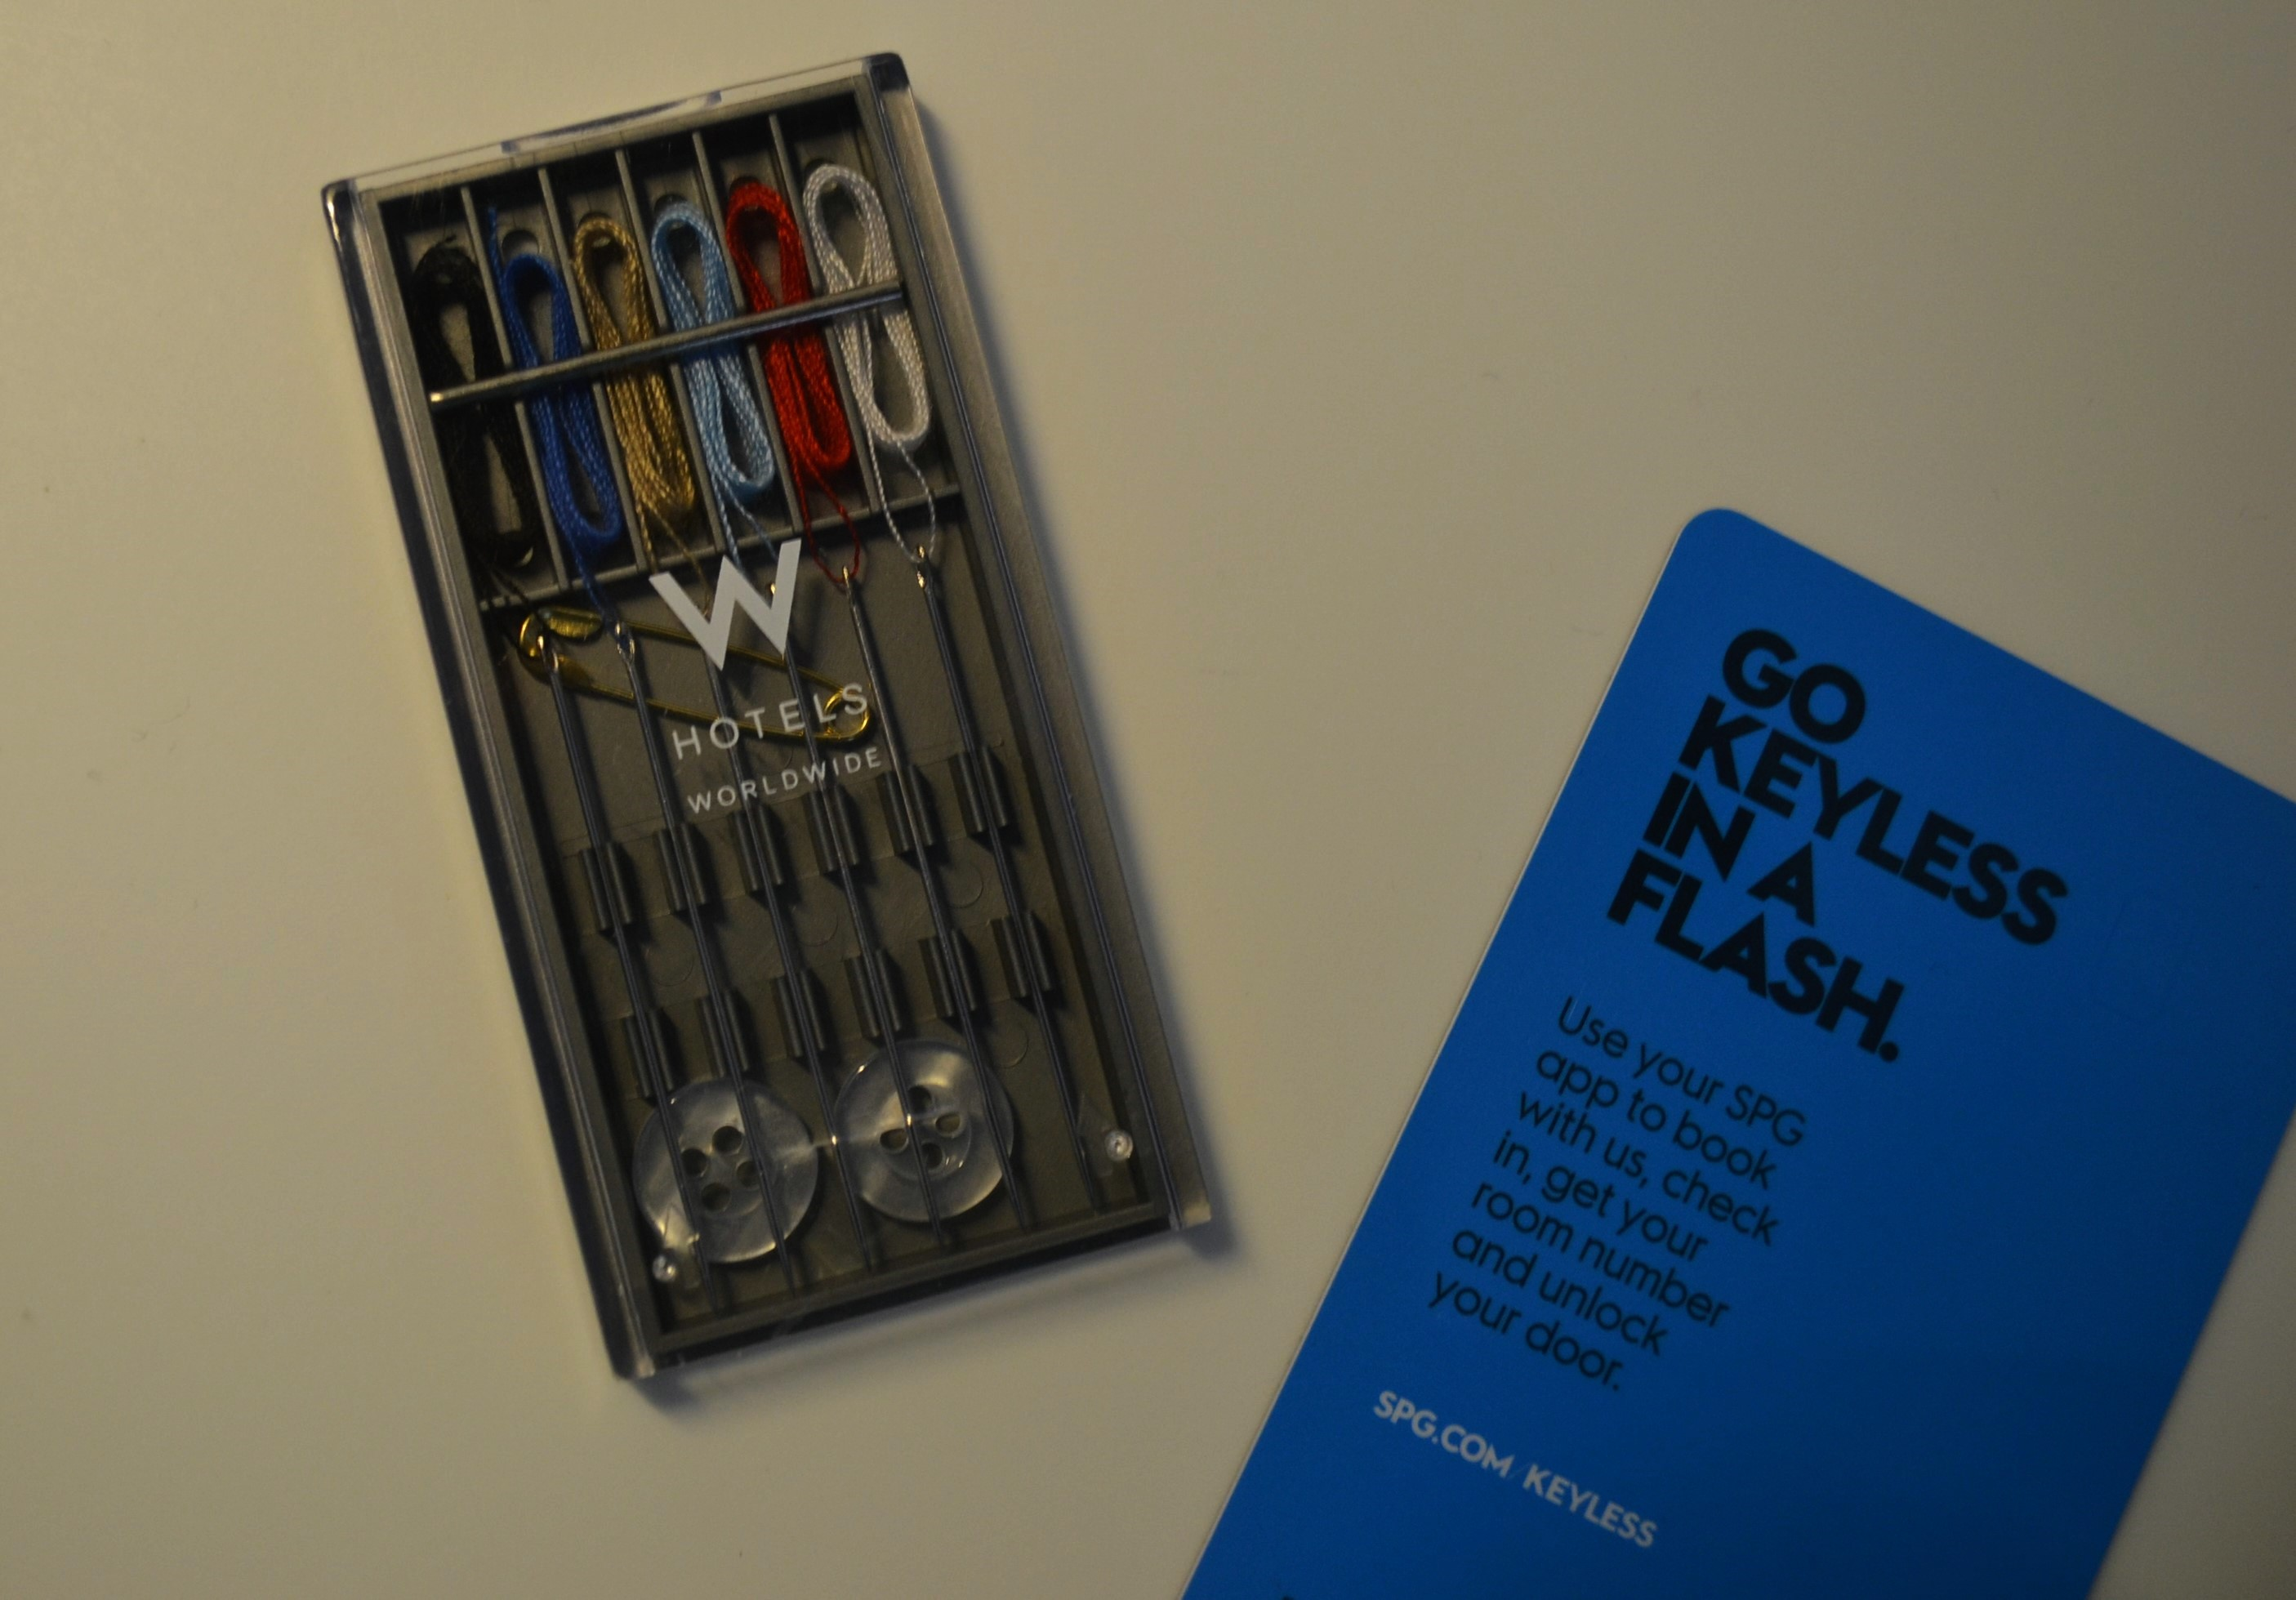 The W Hotel NY Downtown emergency sewing kit